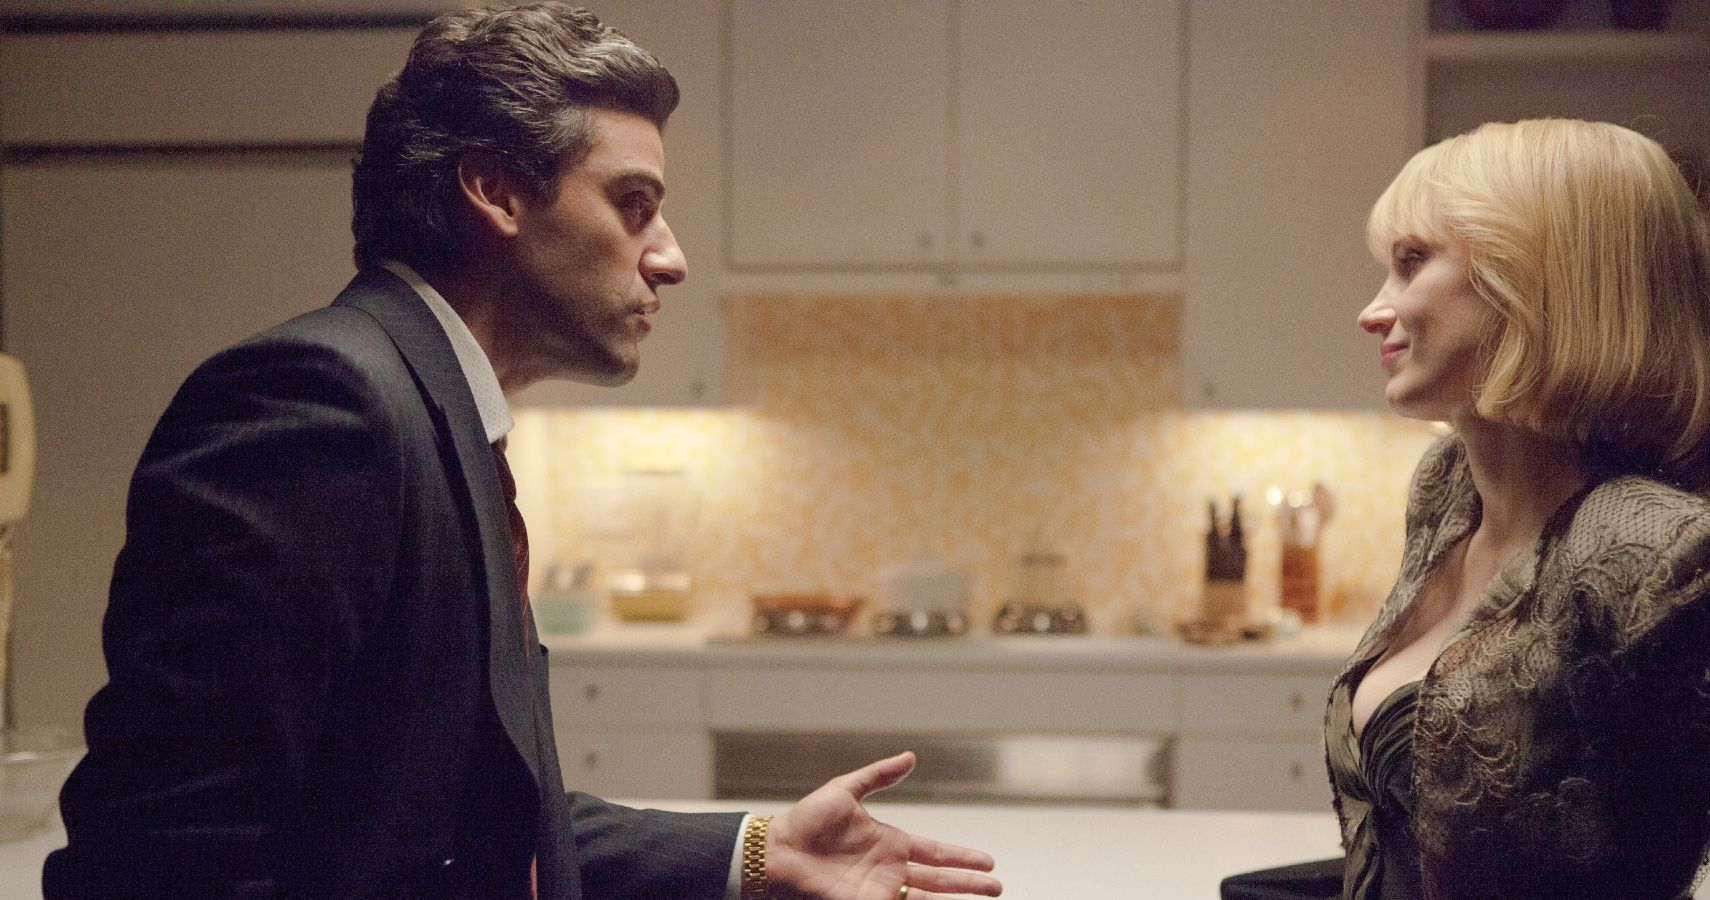 HBO First Look At 'Scenes From A Marriage' With Oscar Isaac, Jessica Chastain